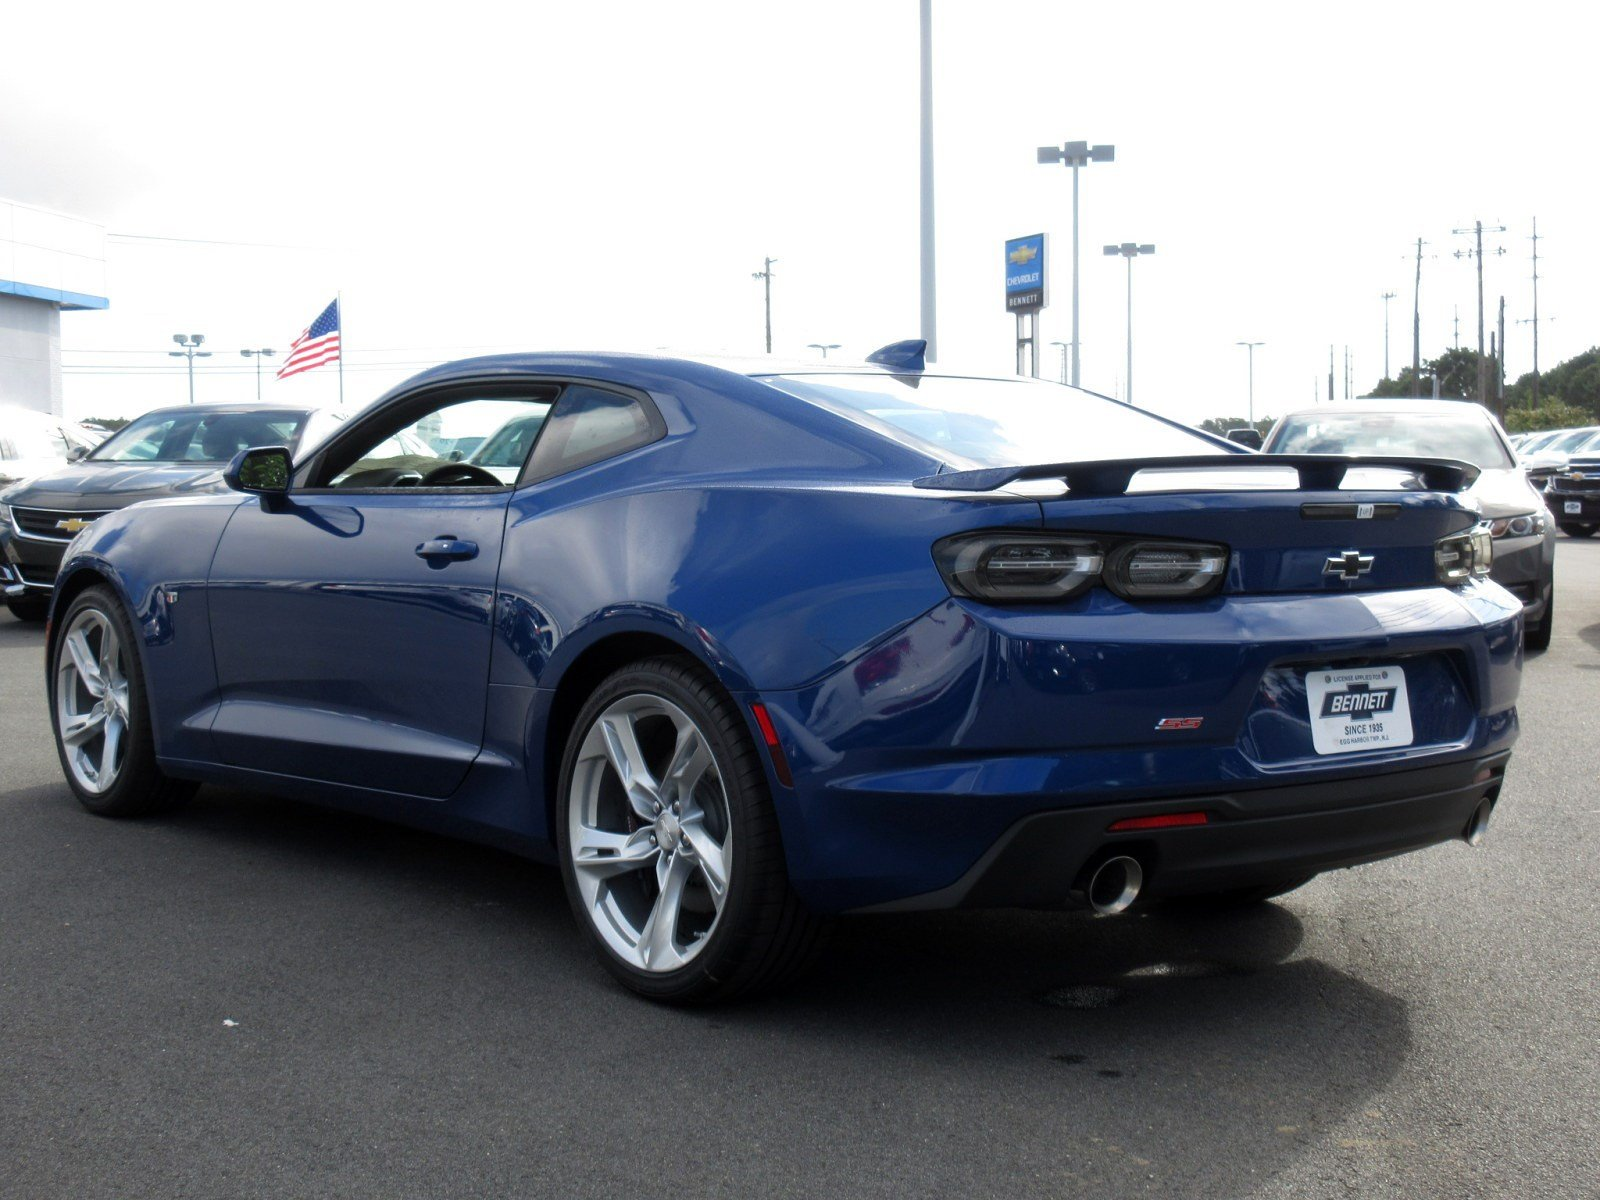 New 2019 Chevrolet Camaro Ss 2dr Car In Egg Harbor Township 59197